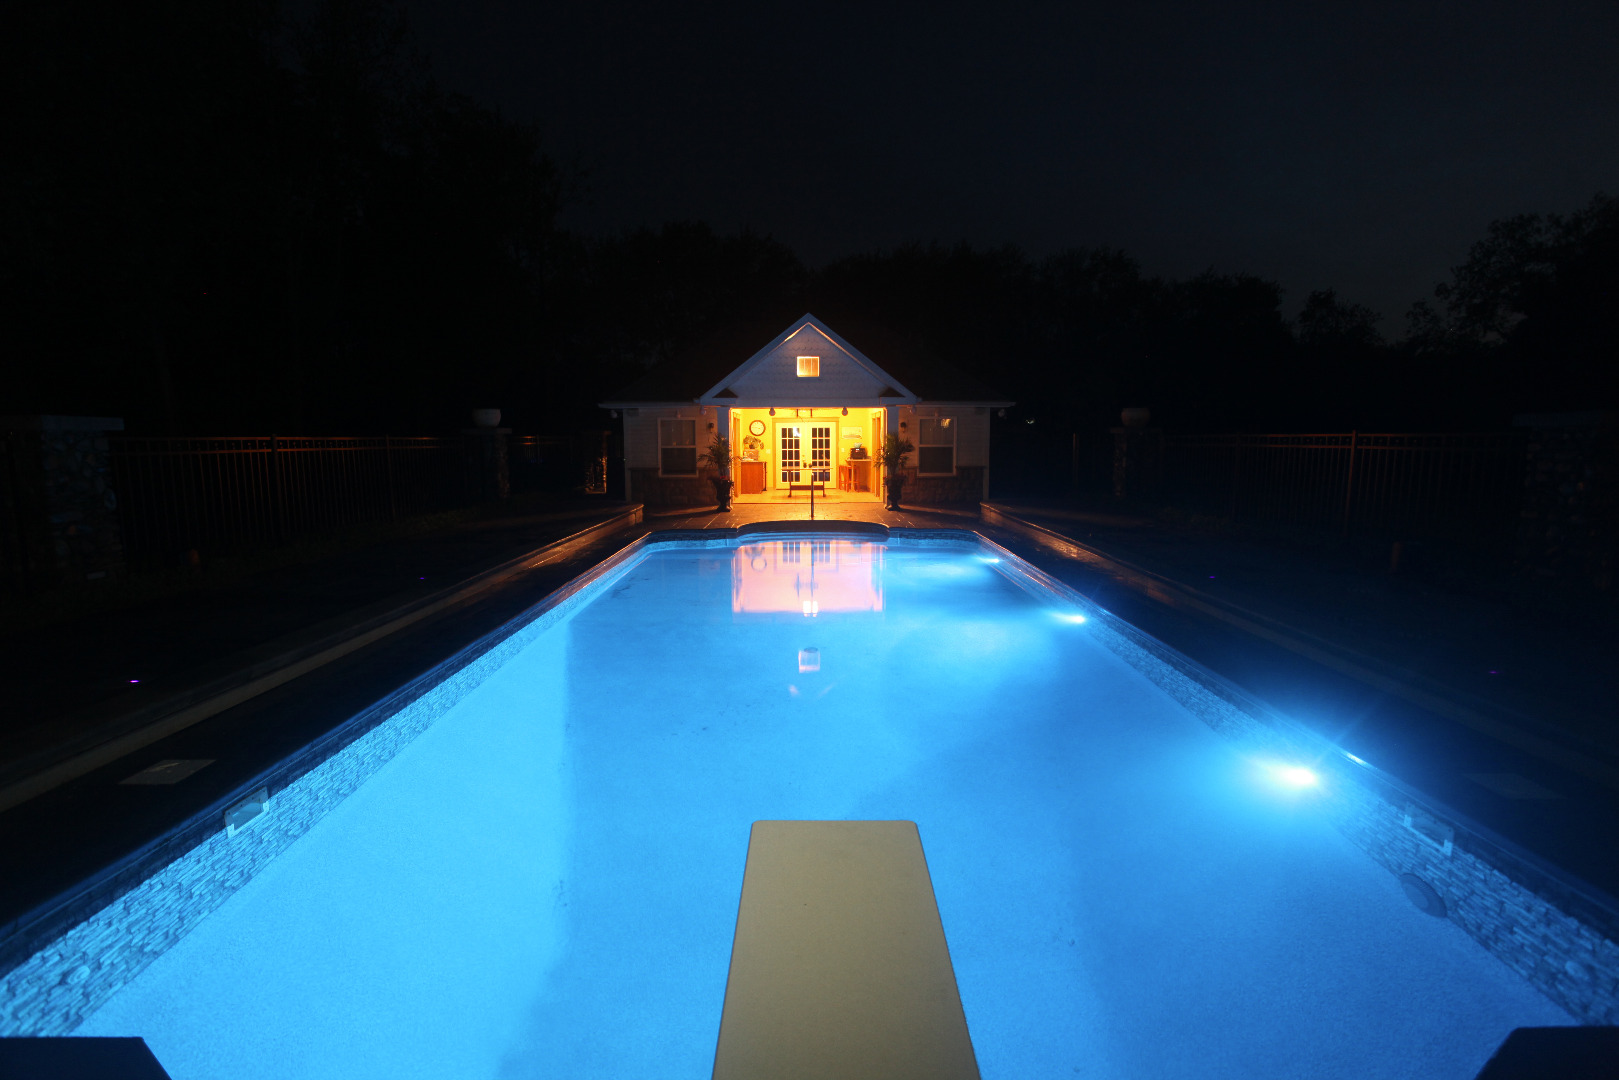 poolLUX™ Premier Pool Lighting Control System  sc 1 st  S.R. Smith & LED Swimming Pool Light Control | poolLUX Control System azcodes.com